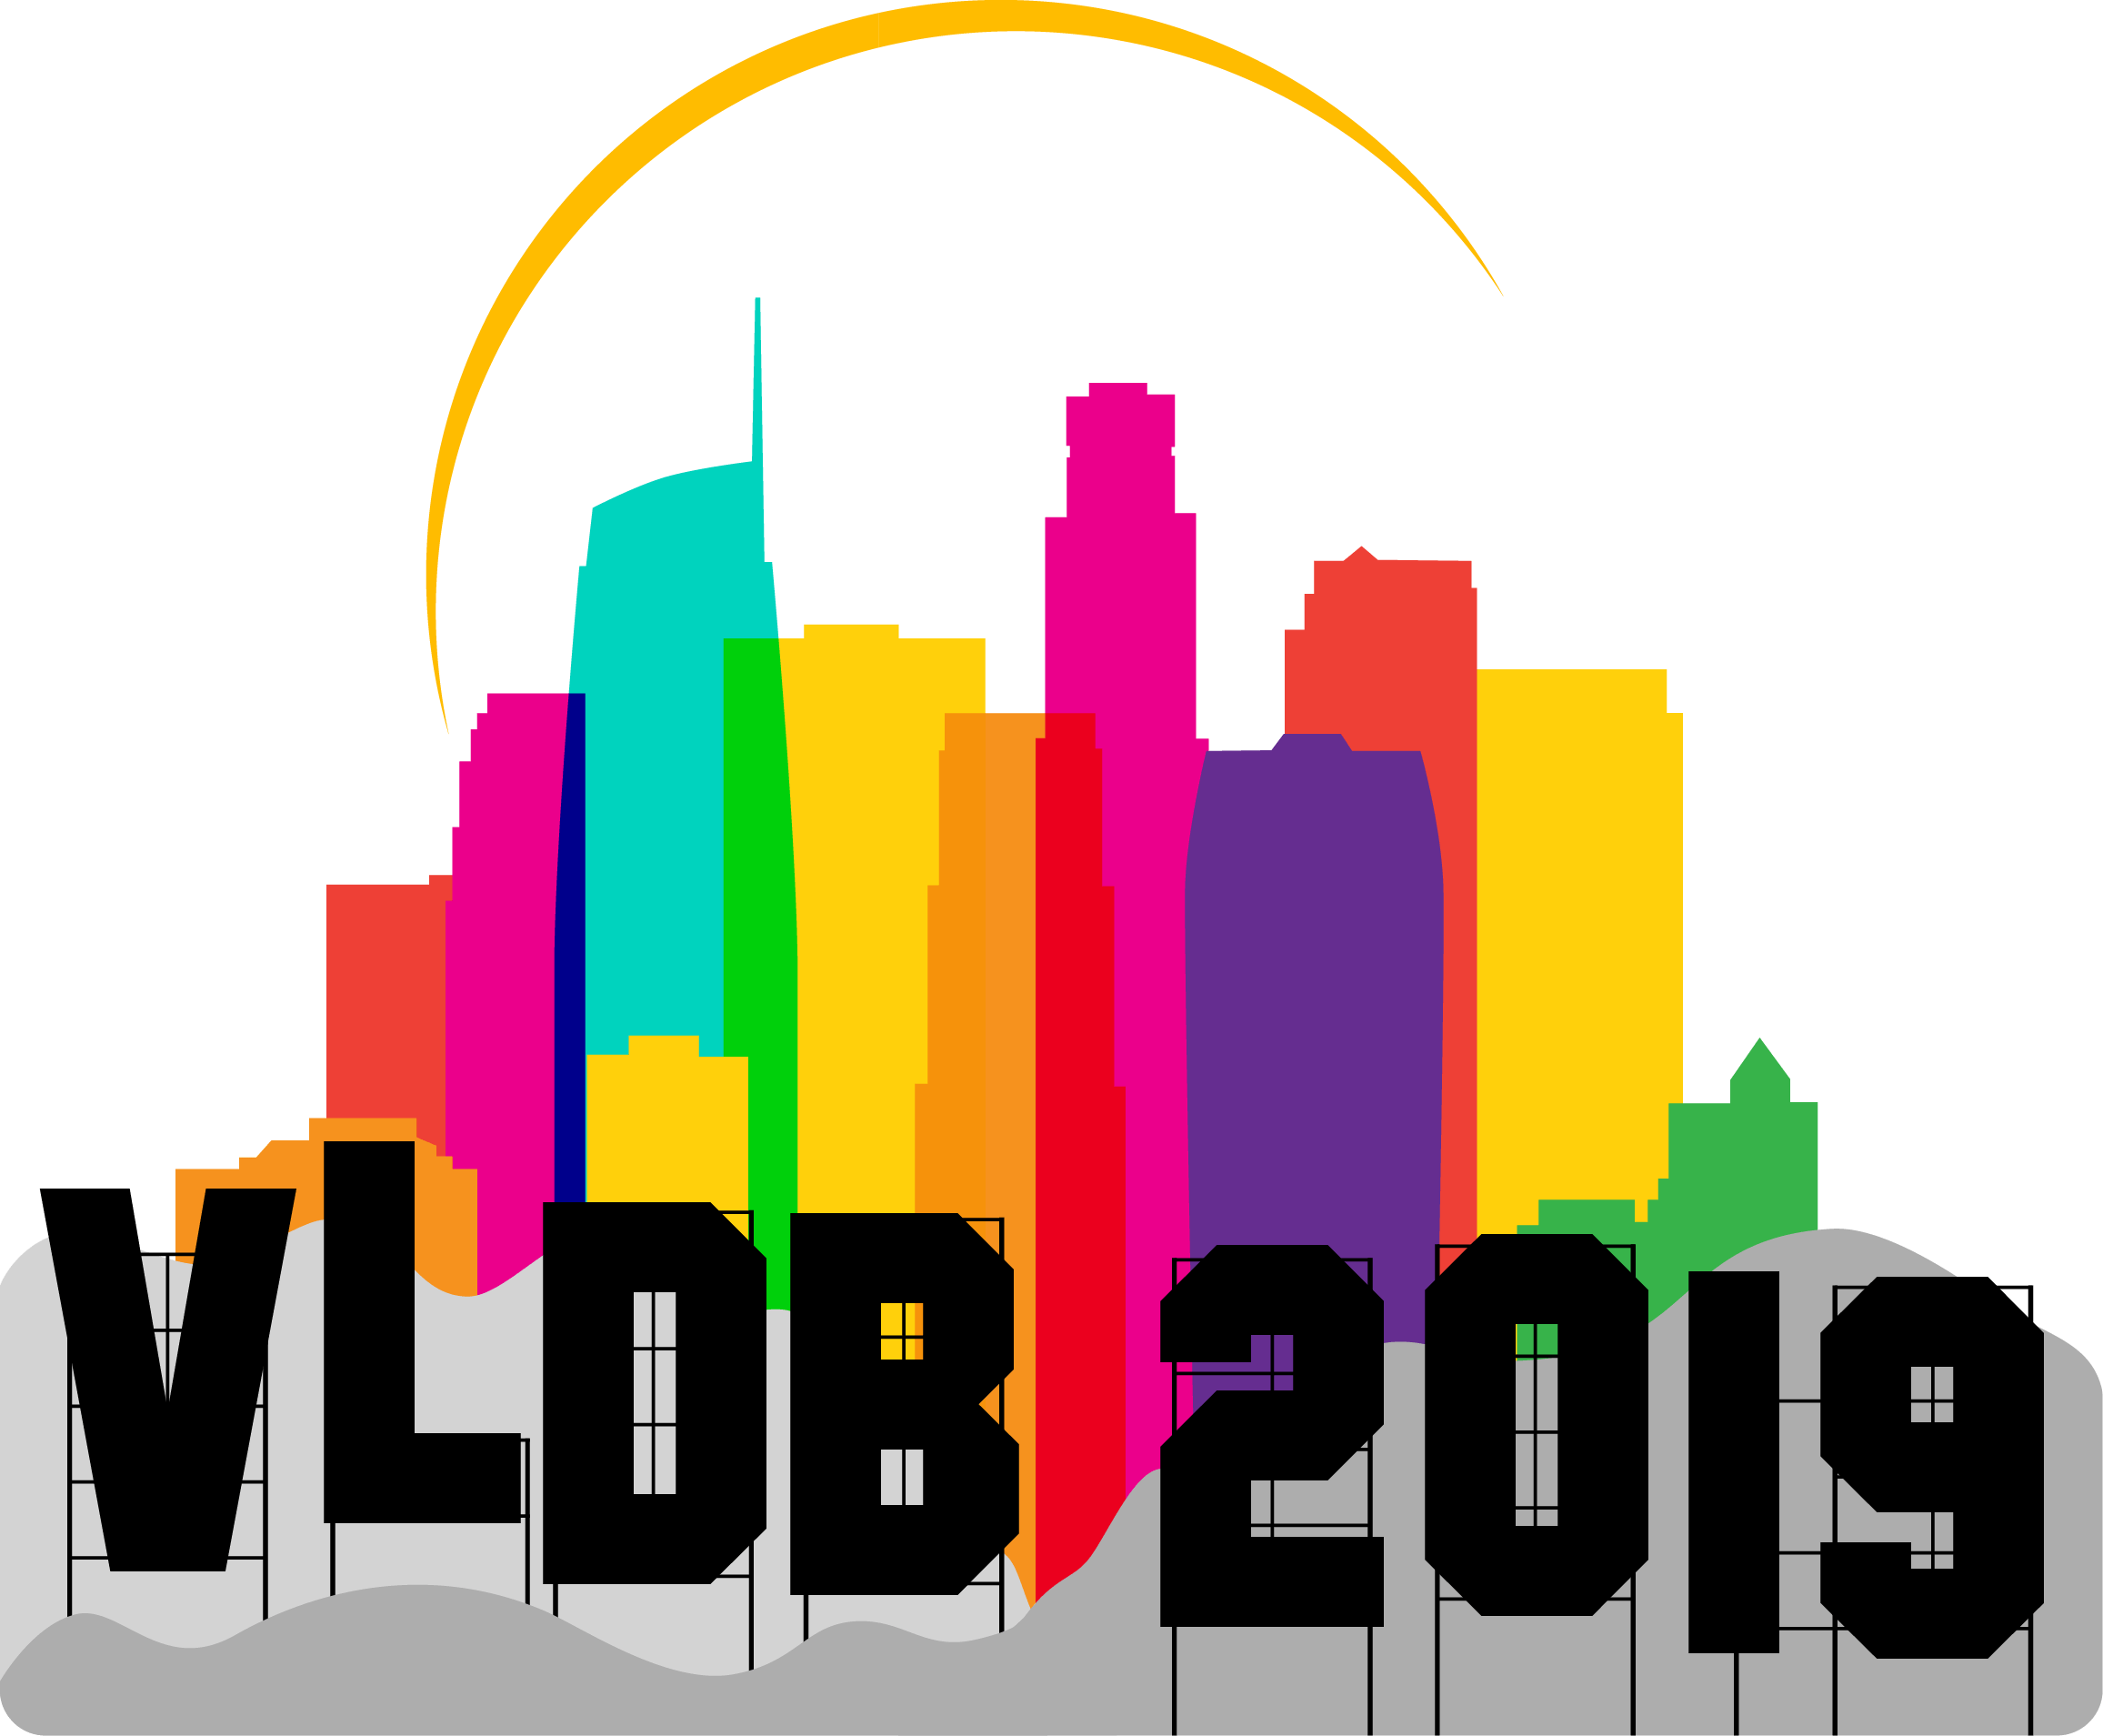 VLDB 2019 - Research Track Papers